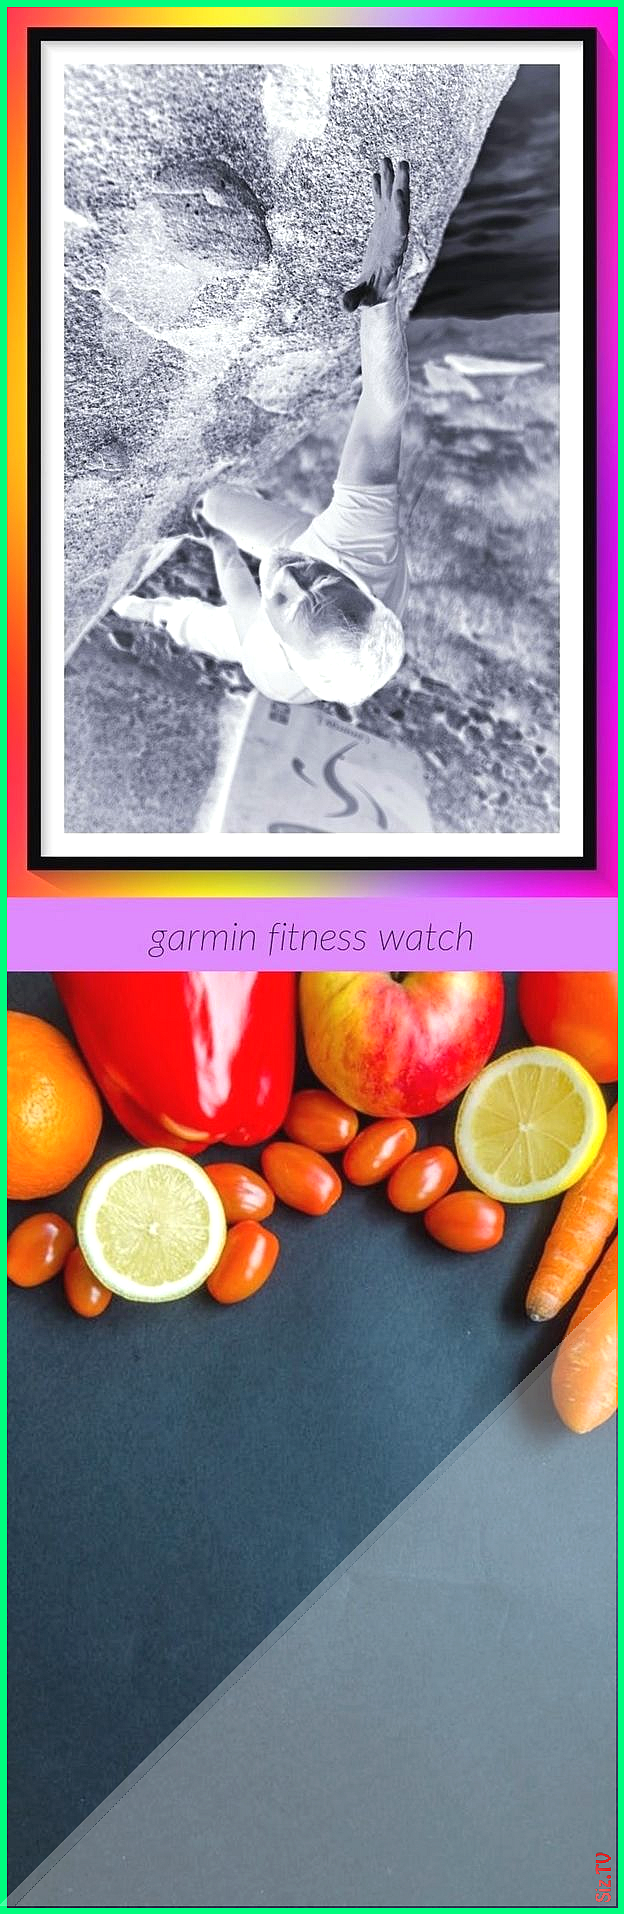 garmin fitness watch 986 20181007160335 52  low impact cardio and toning workout for beginners by fi...